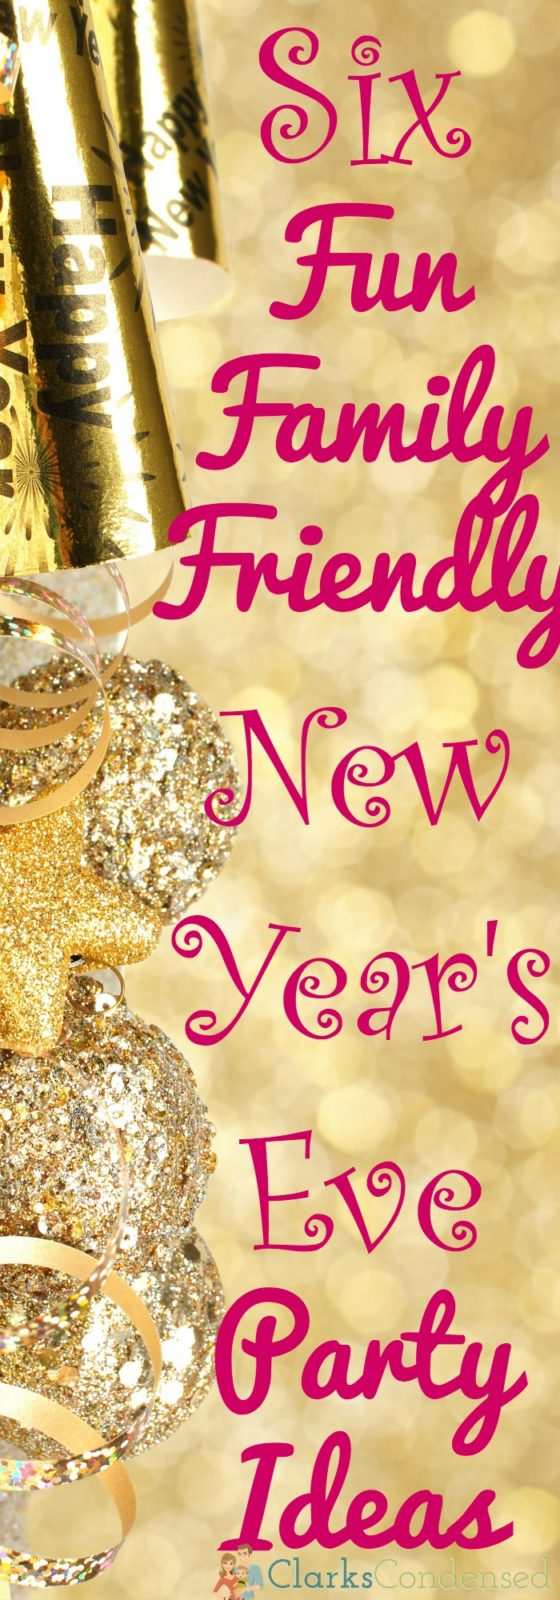 Family Friendly New Year's Eve Parties Ideas